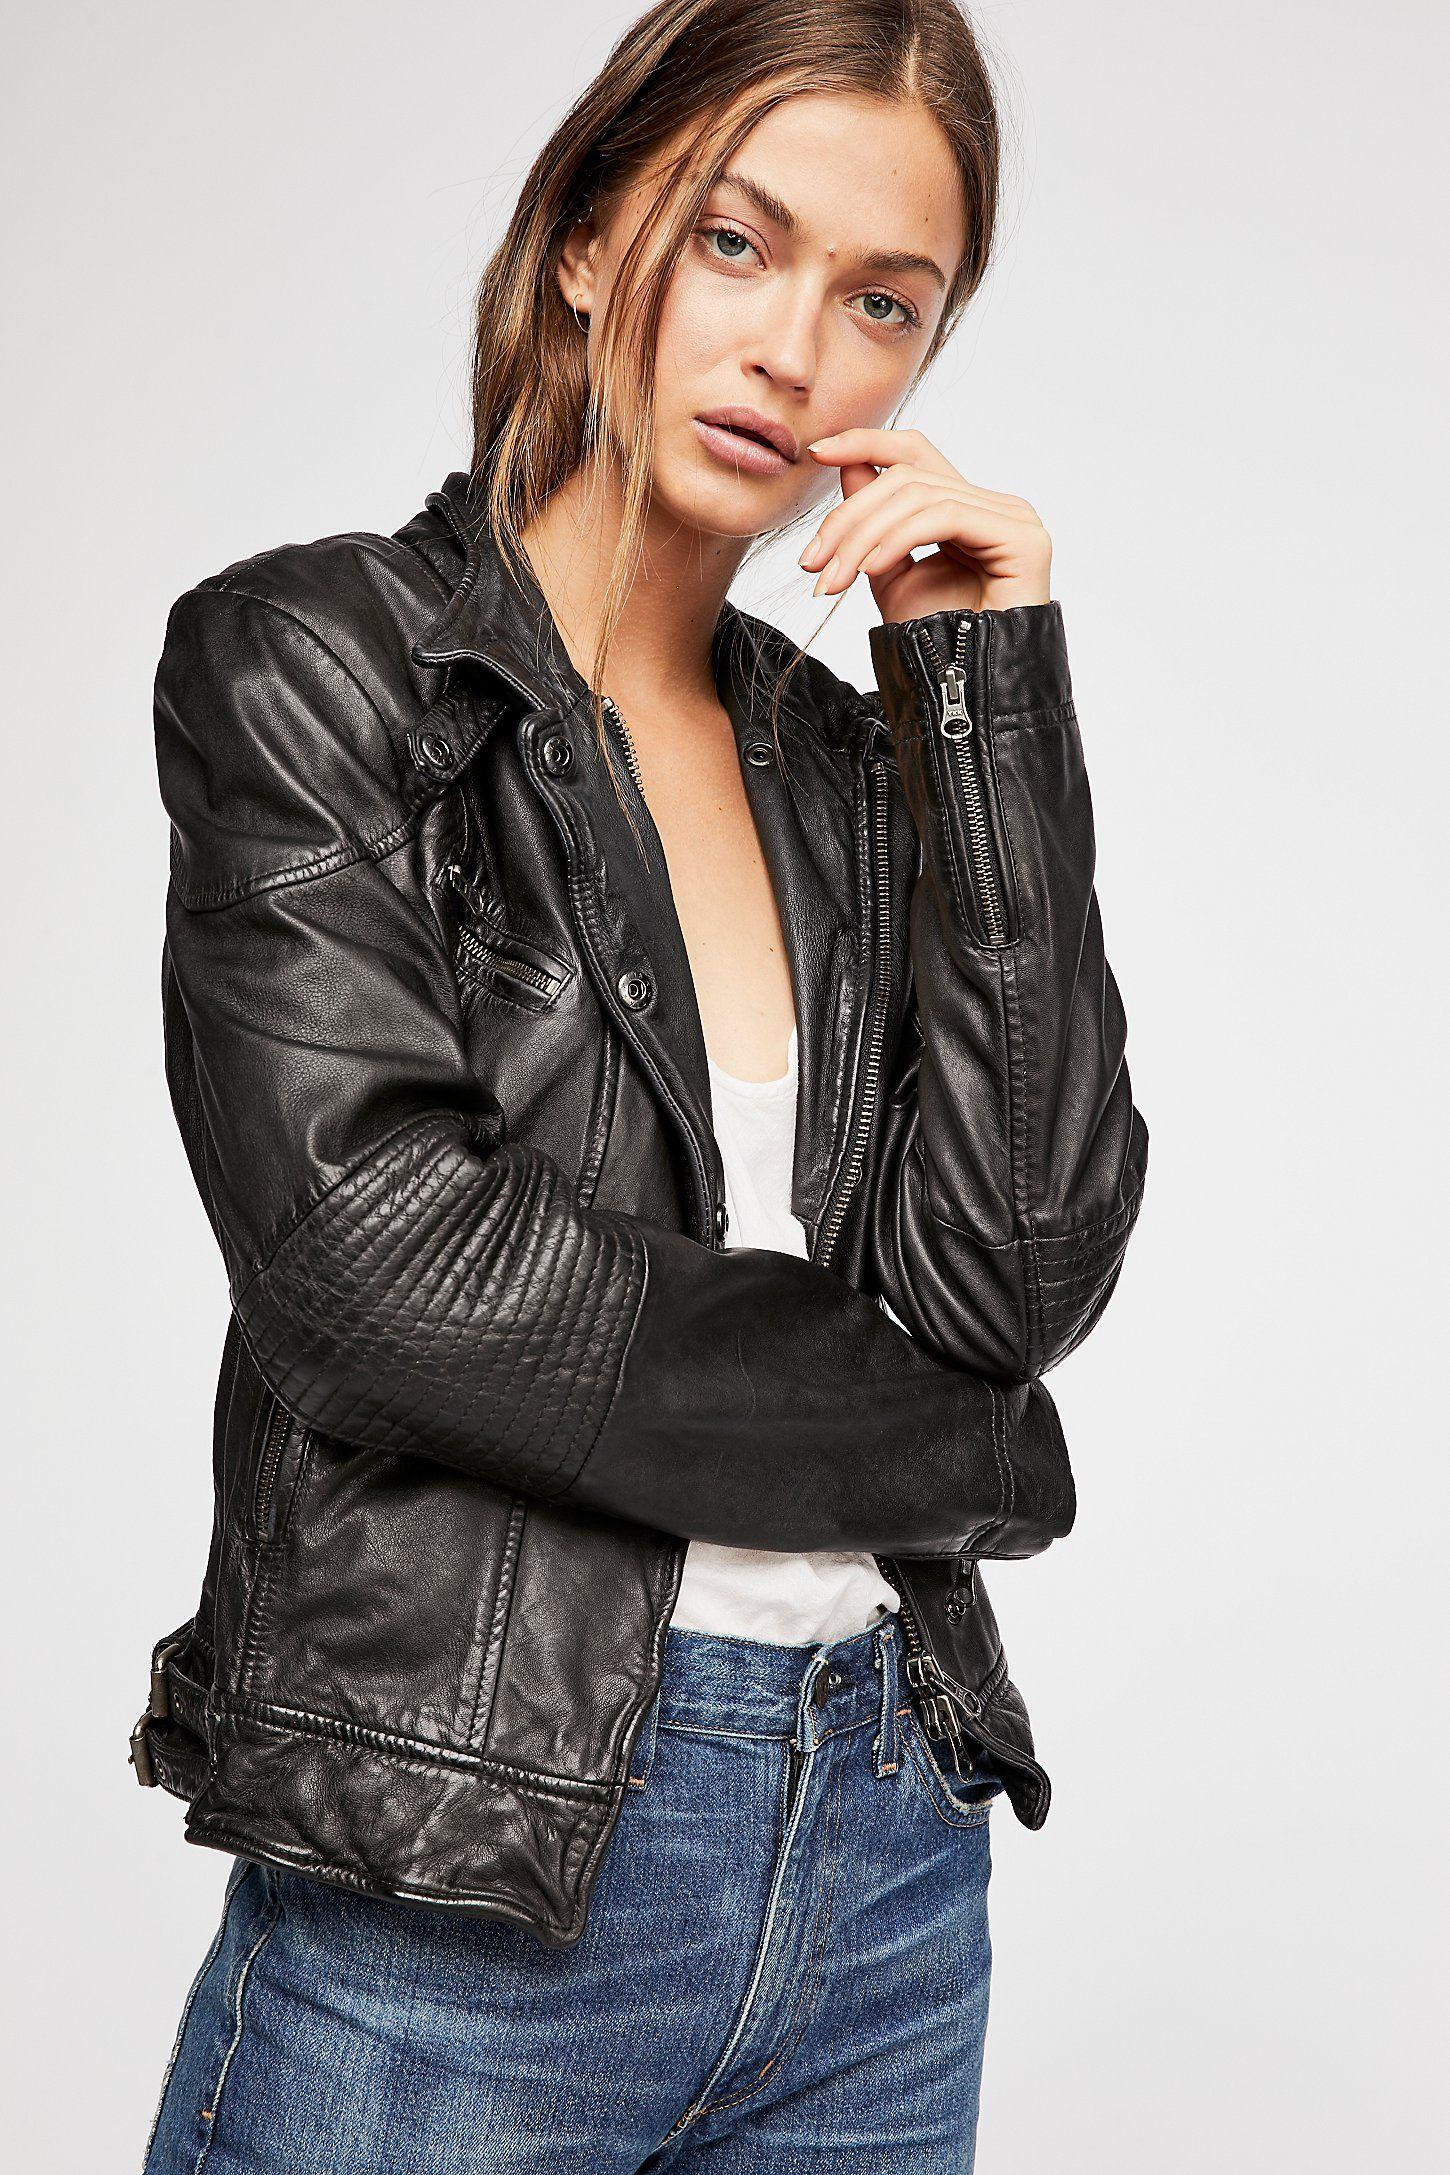 Fitted And Rugged Leather Jacket Leather Jacket Leather Jacket Girl Leather Jackets Women